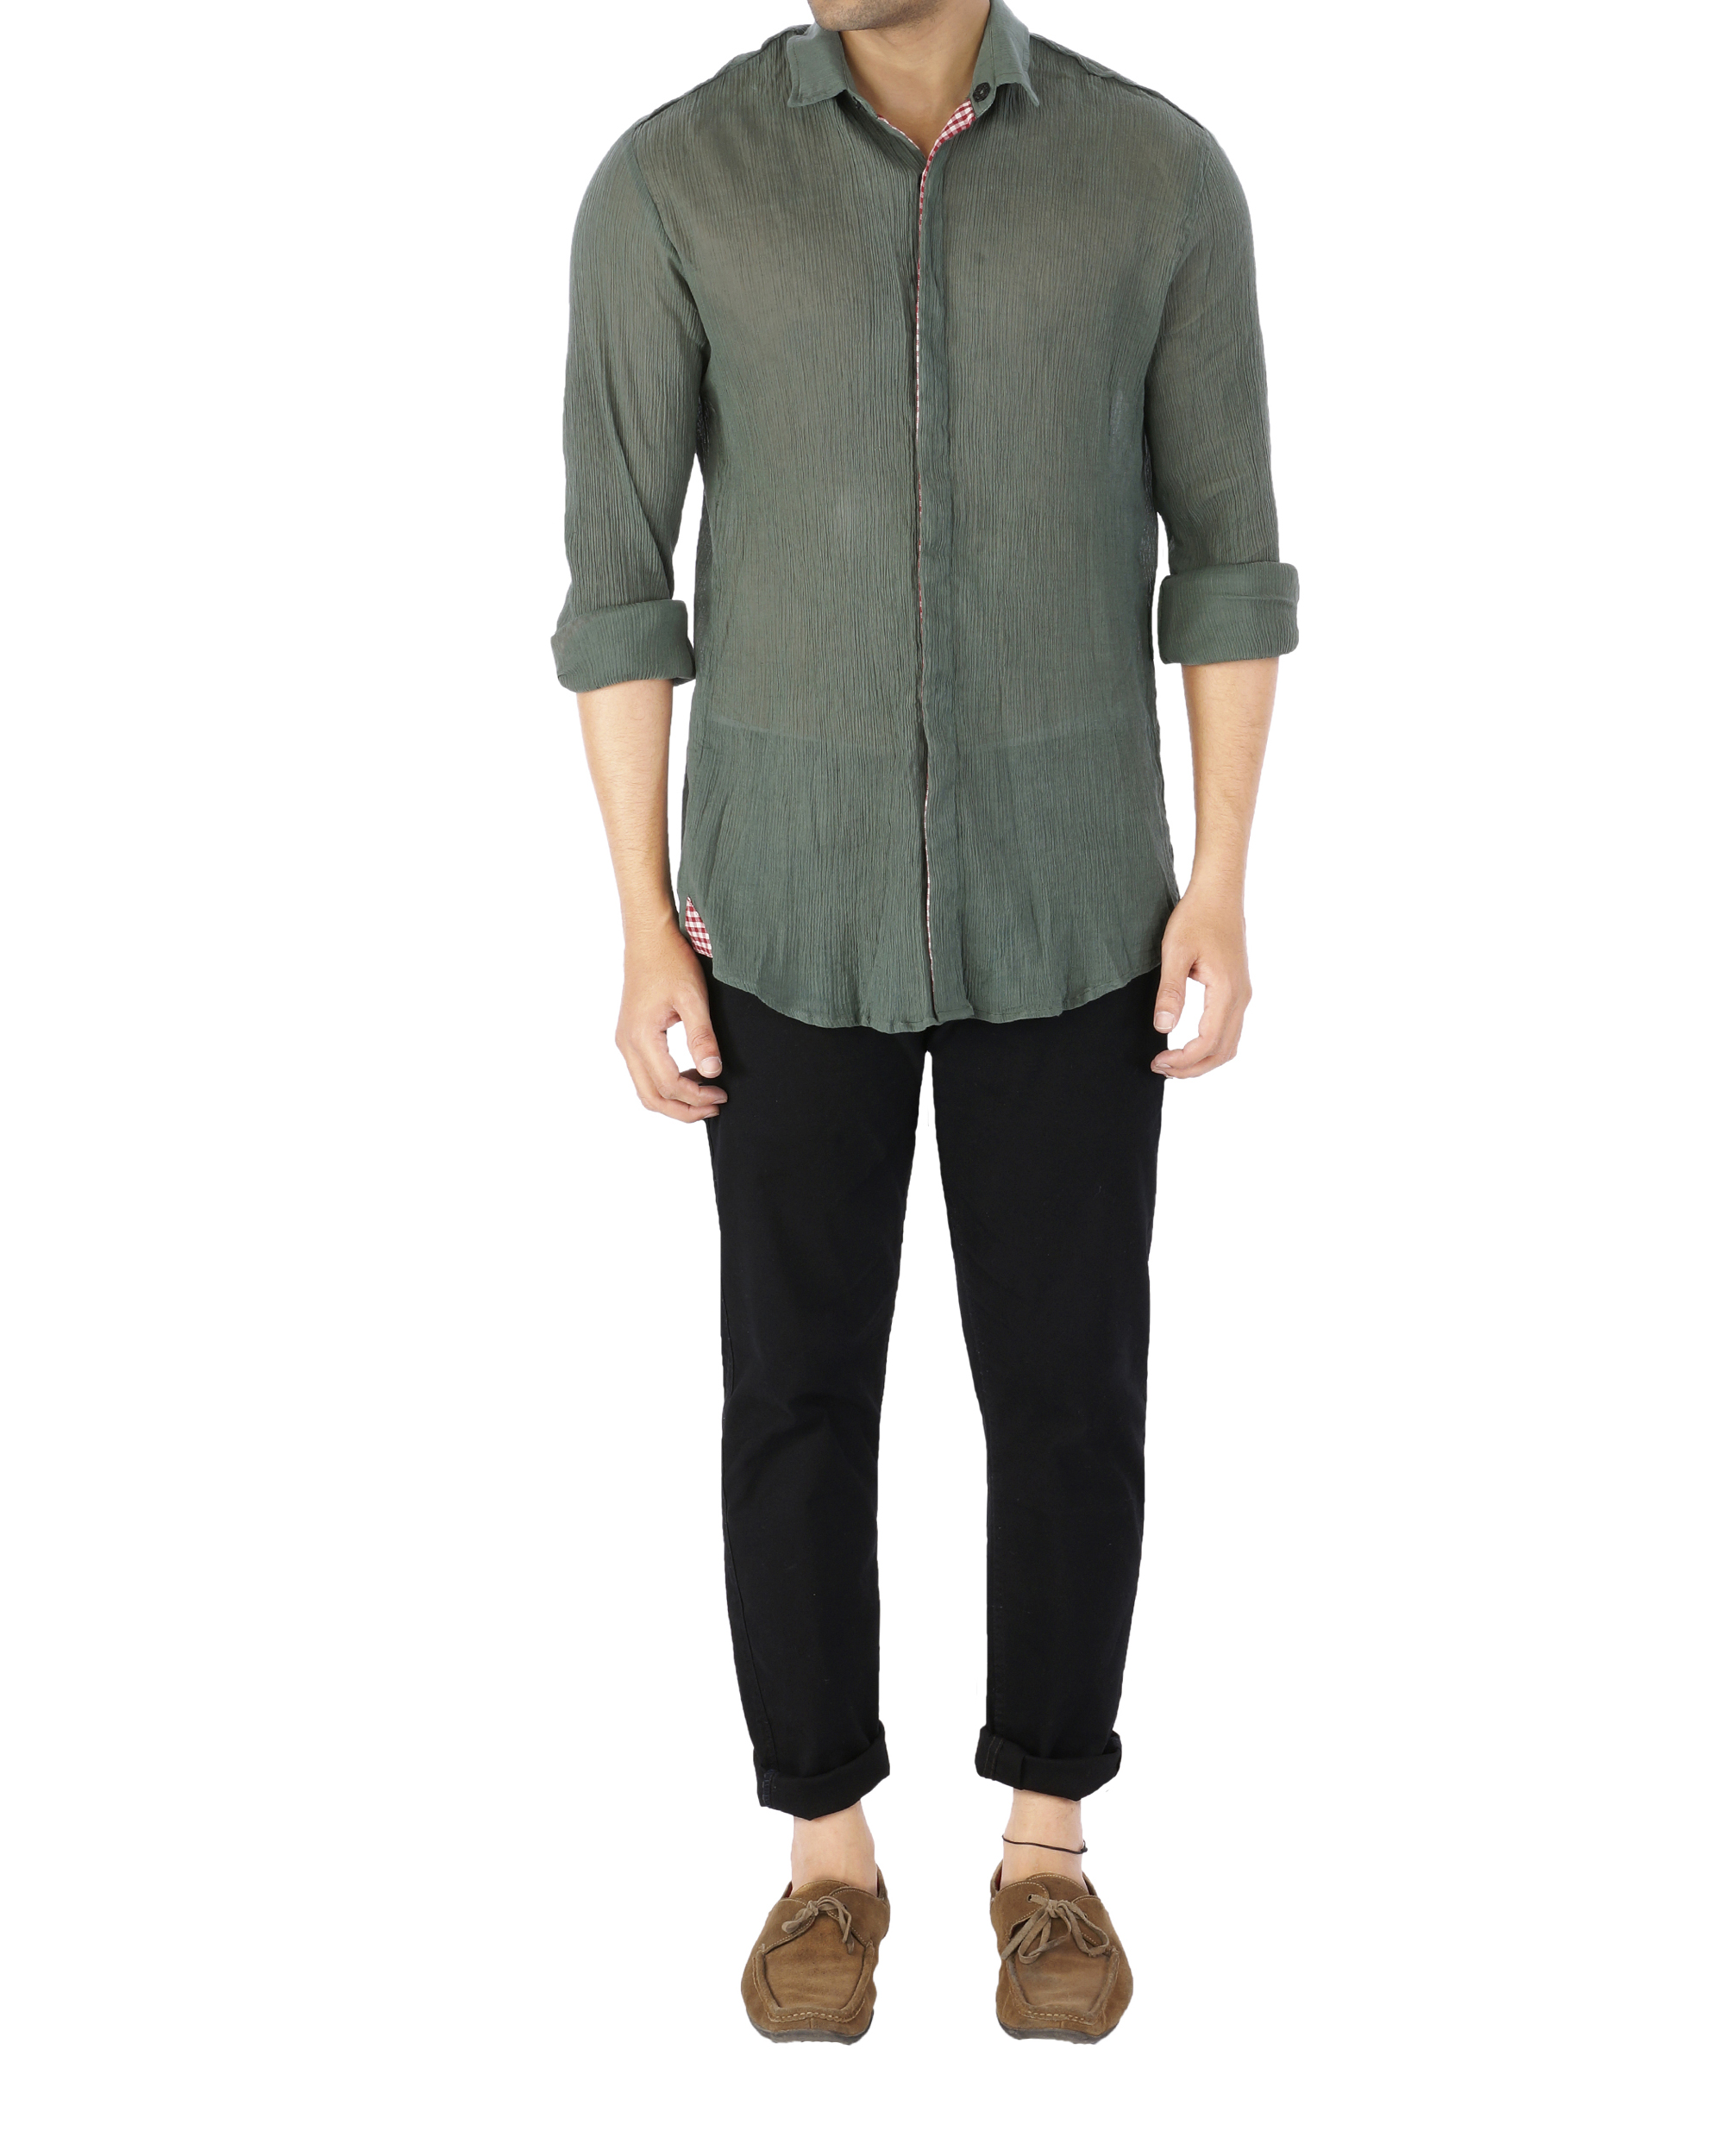 Olive green crushed voile shirt